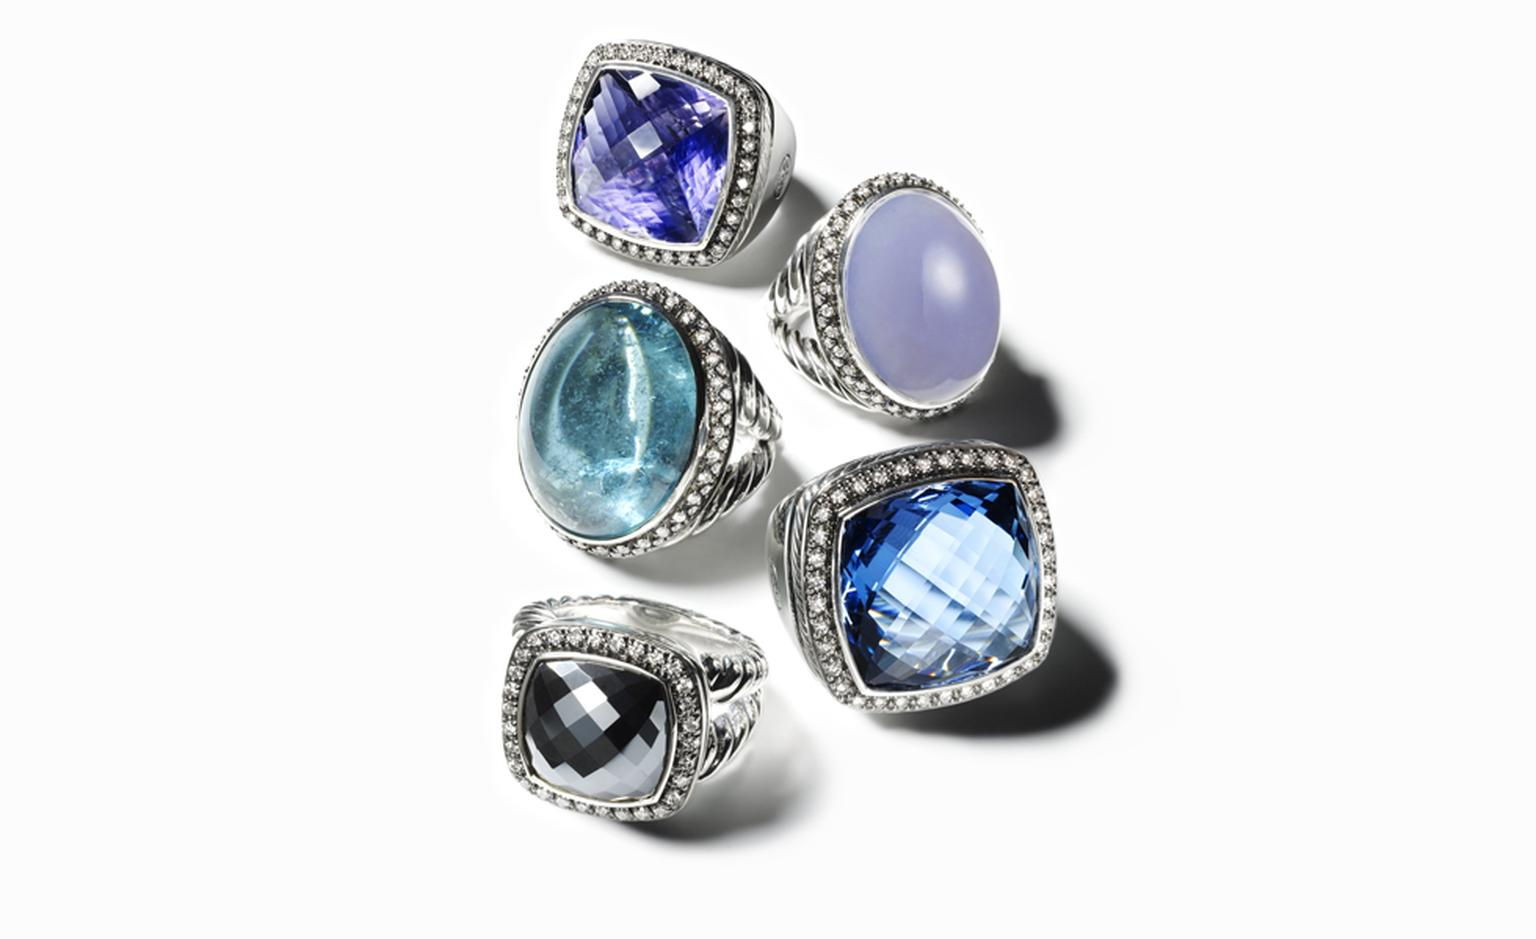 DAVID YURMAN, Lolite Albion Ring, POA. Blue Chalcedony Signature Oval Ring, $8,800. Green Tourmaline Signature, POA. Hampton Blue Topaz Albion Ring, $2550. Hematite Albion Ring, $1400